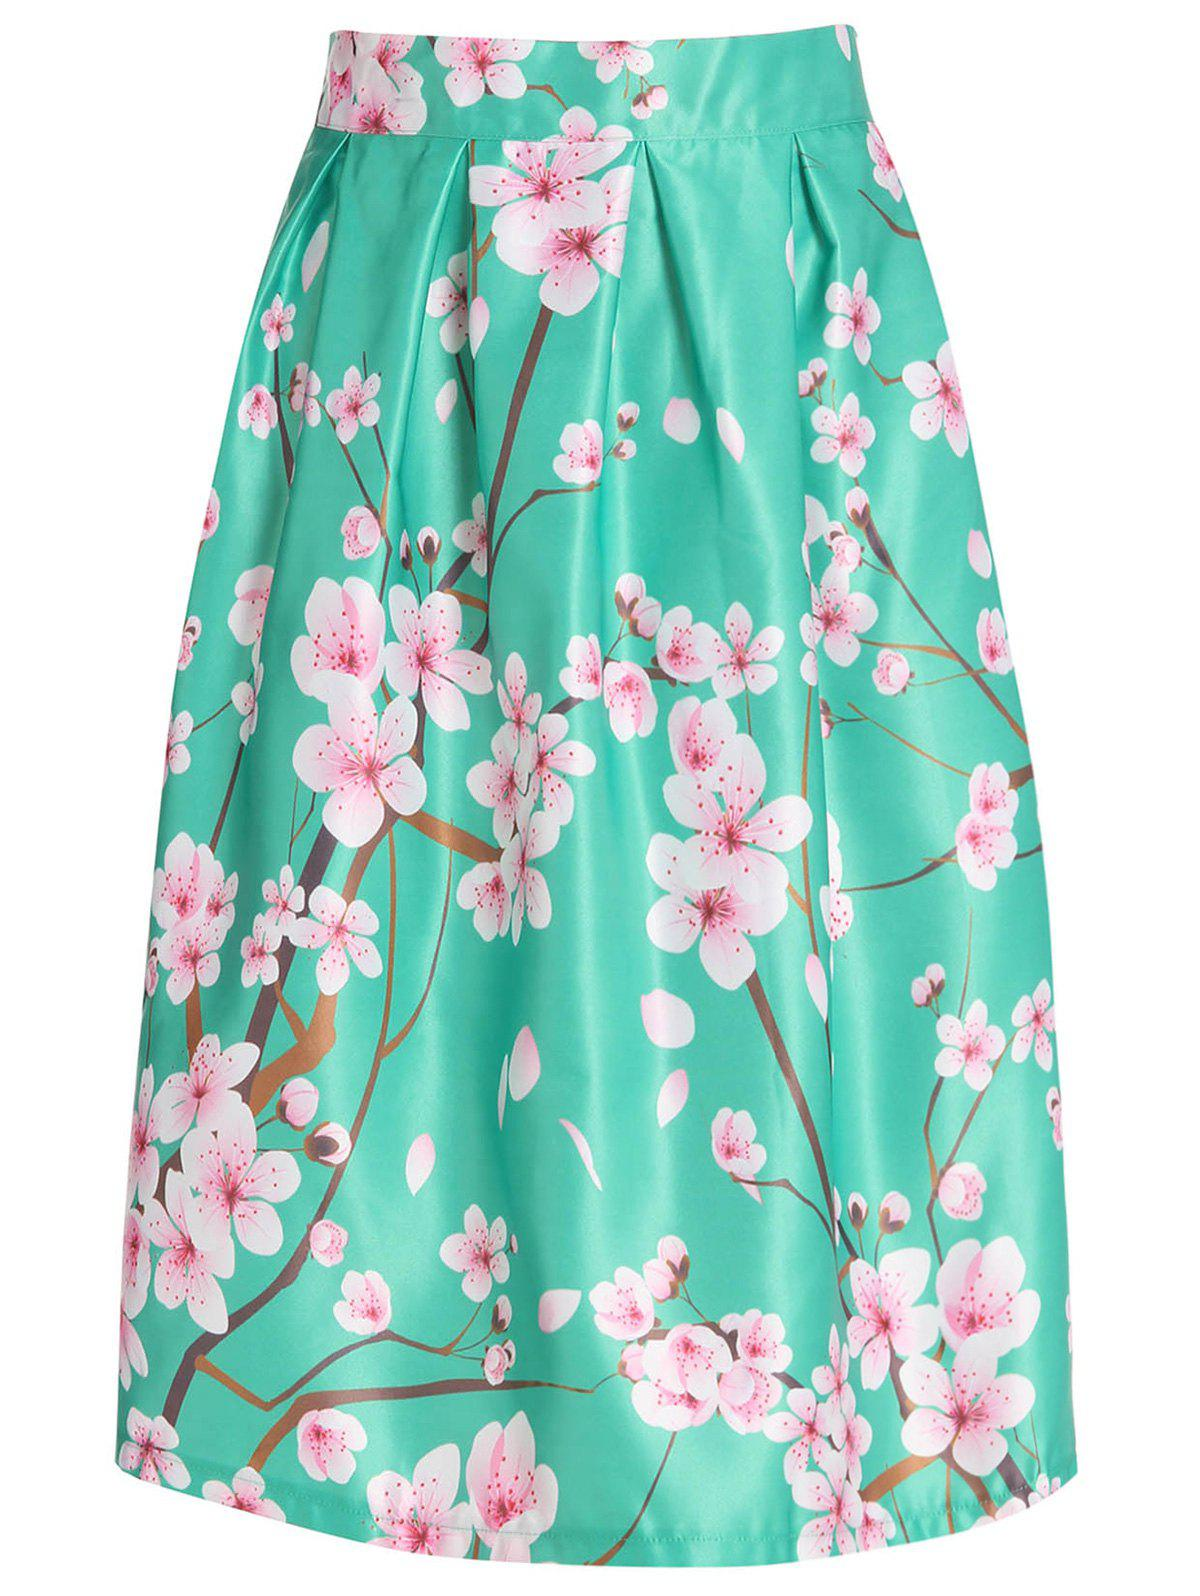 Women's Chic Floral Print High Waist A-Line Skirt - GREEN S